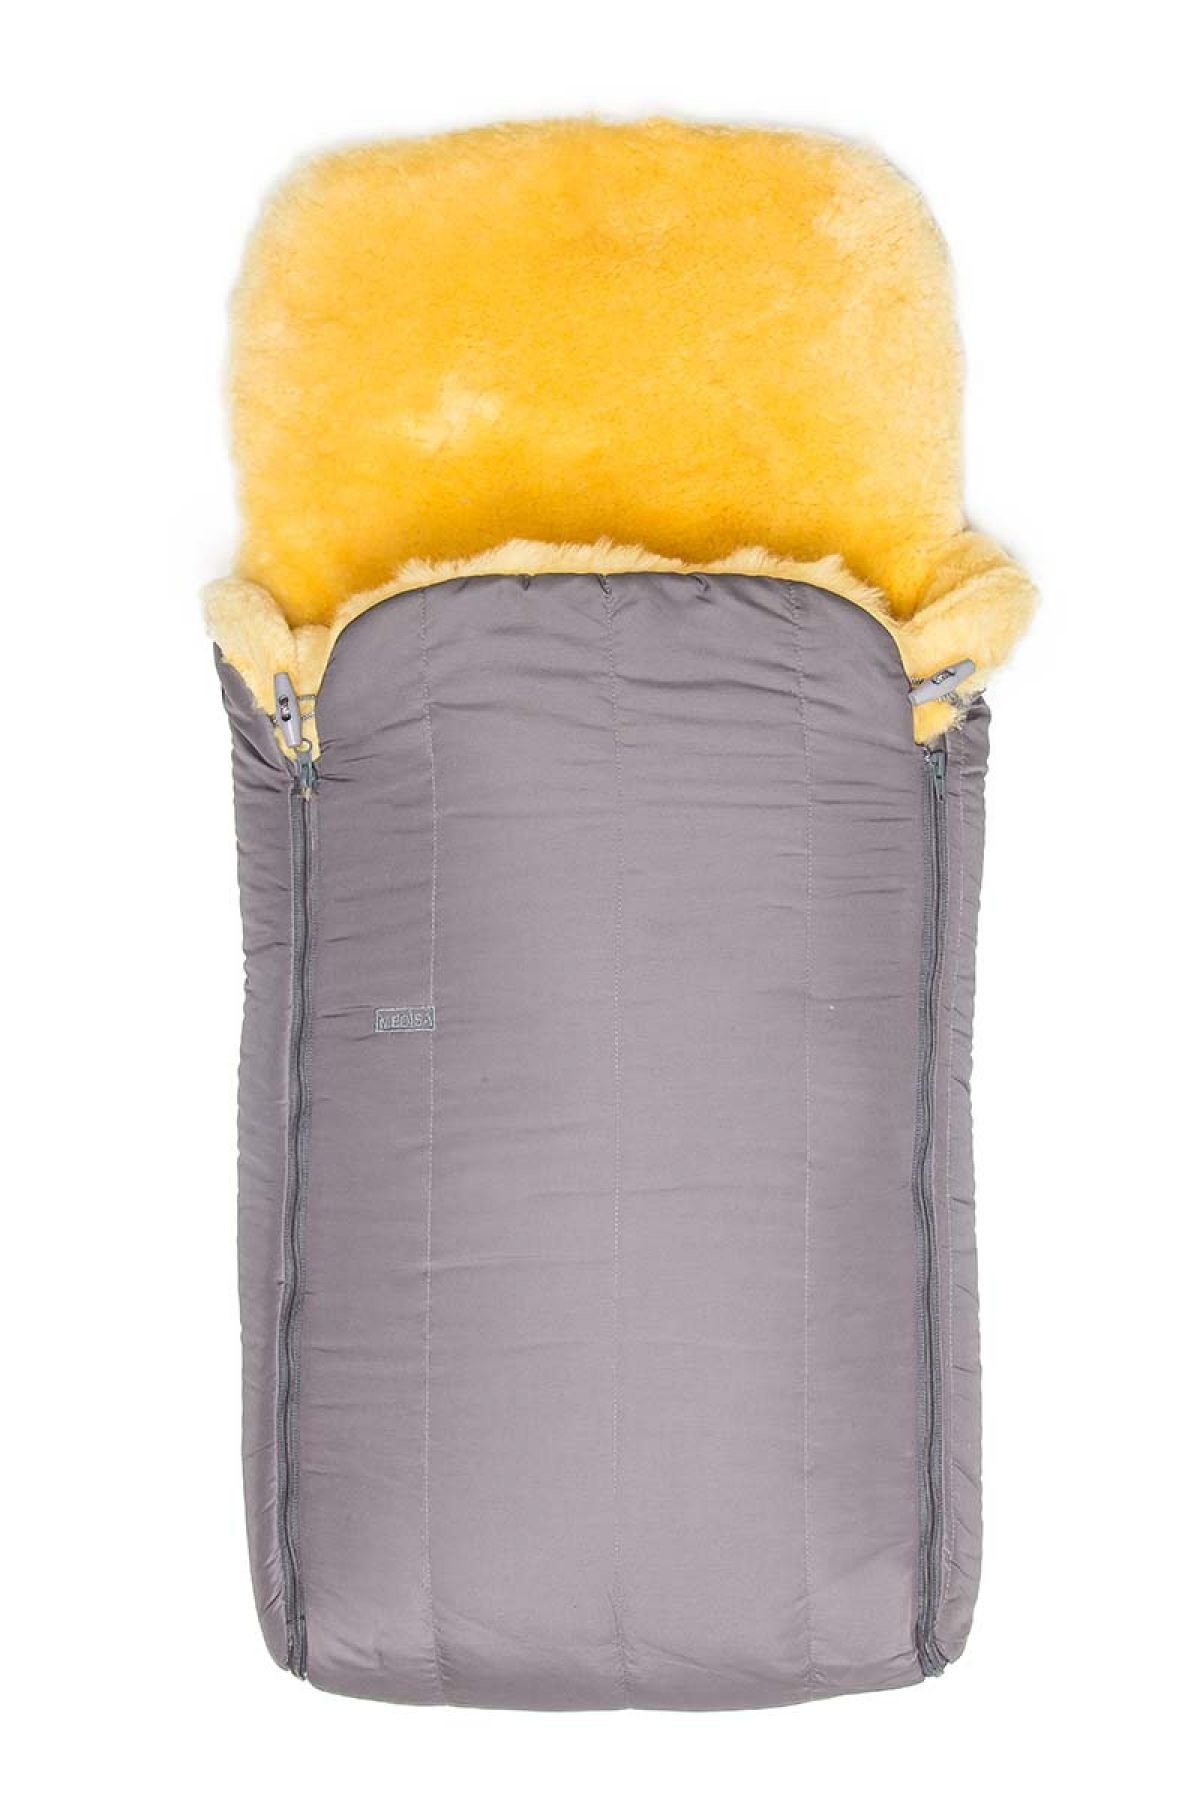 Sheepy Care Double Zippered Baby Sleeping Bag MDK011 Gray